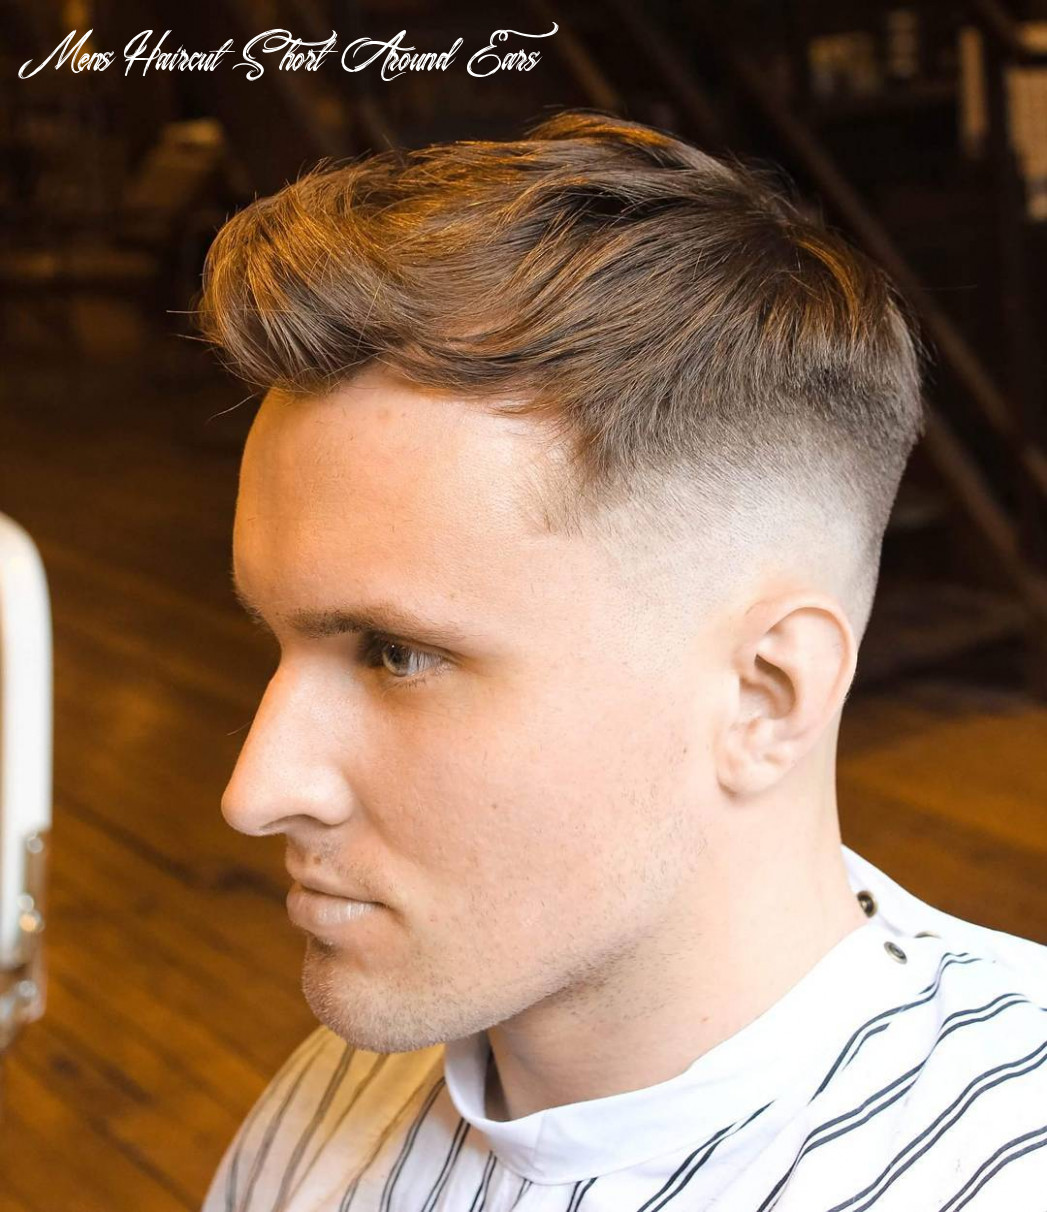 Top 11 Haircuts For Men: Super Cool Styles For 11